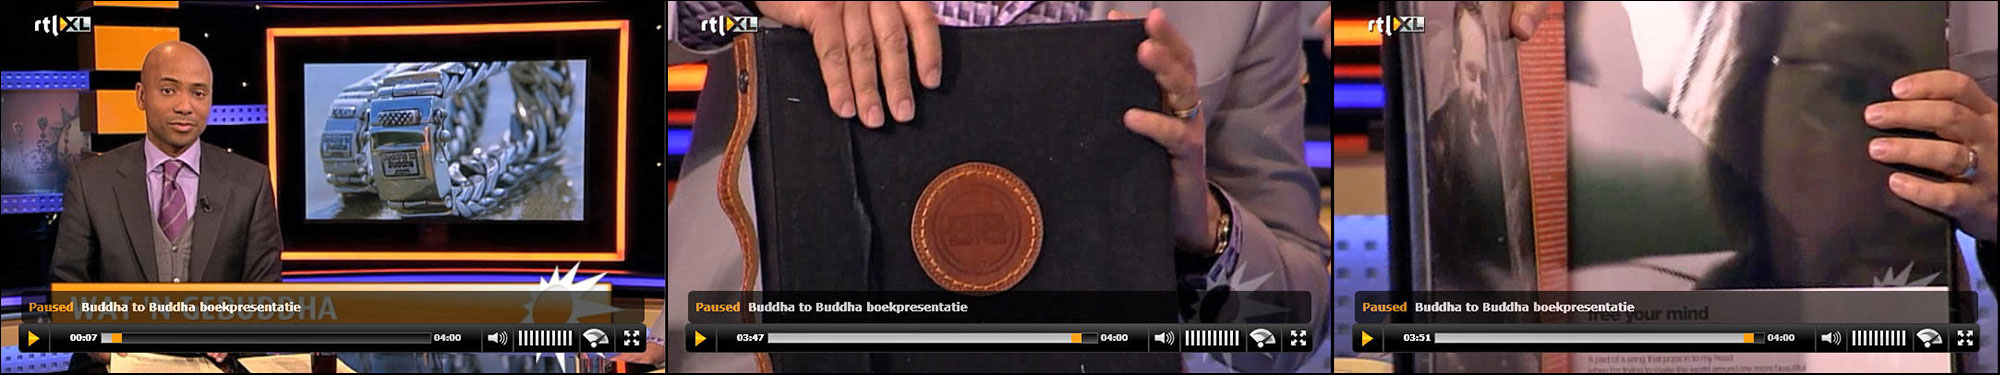 Buddha to Buddha - book on TV